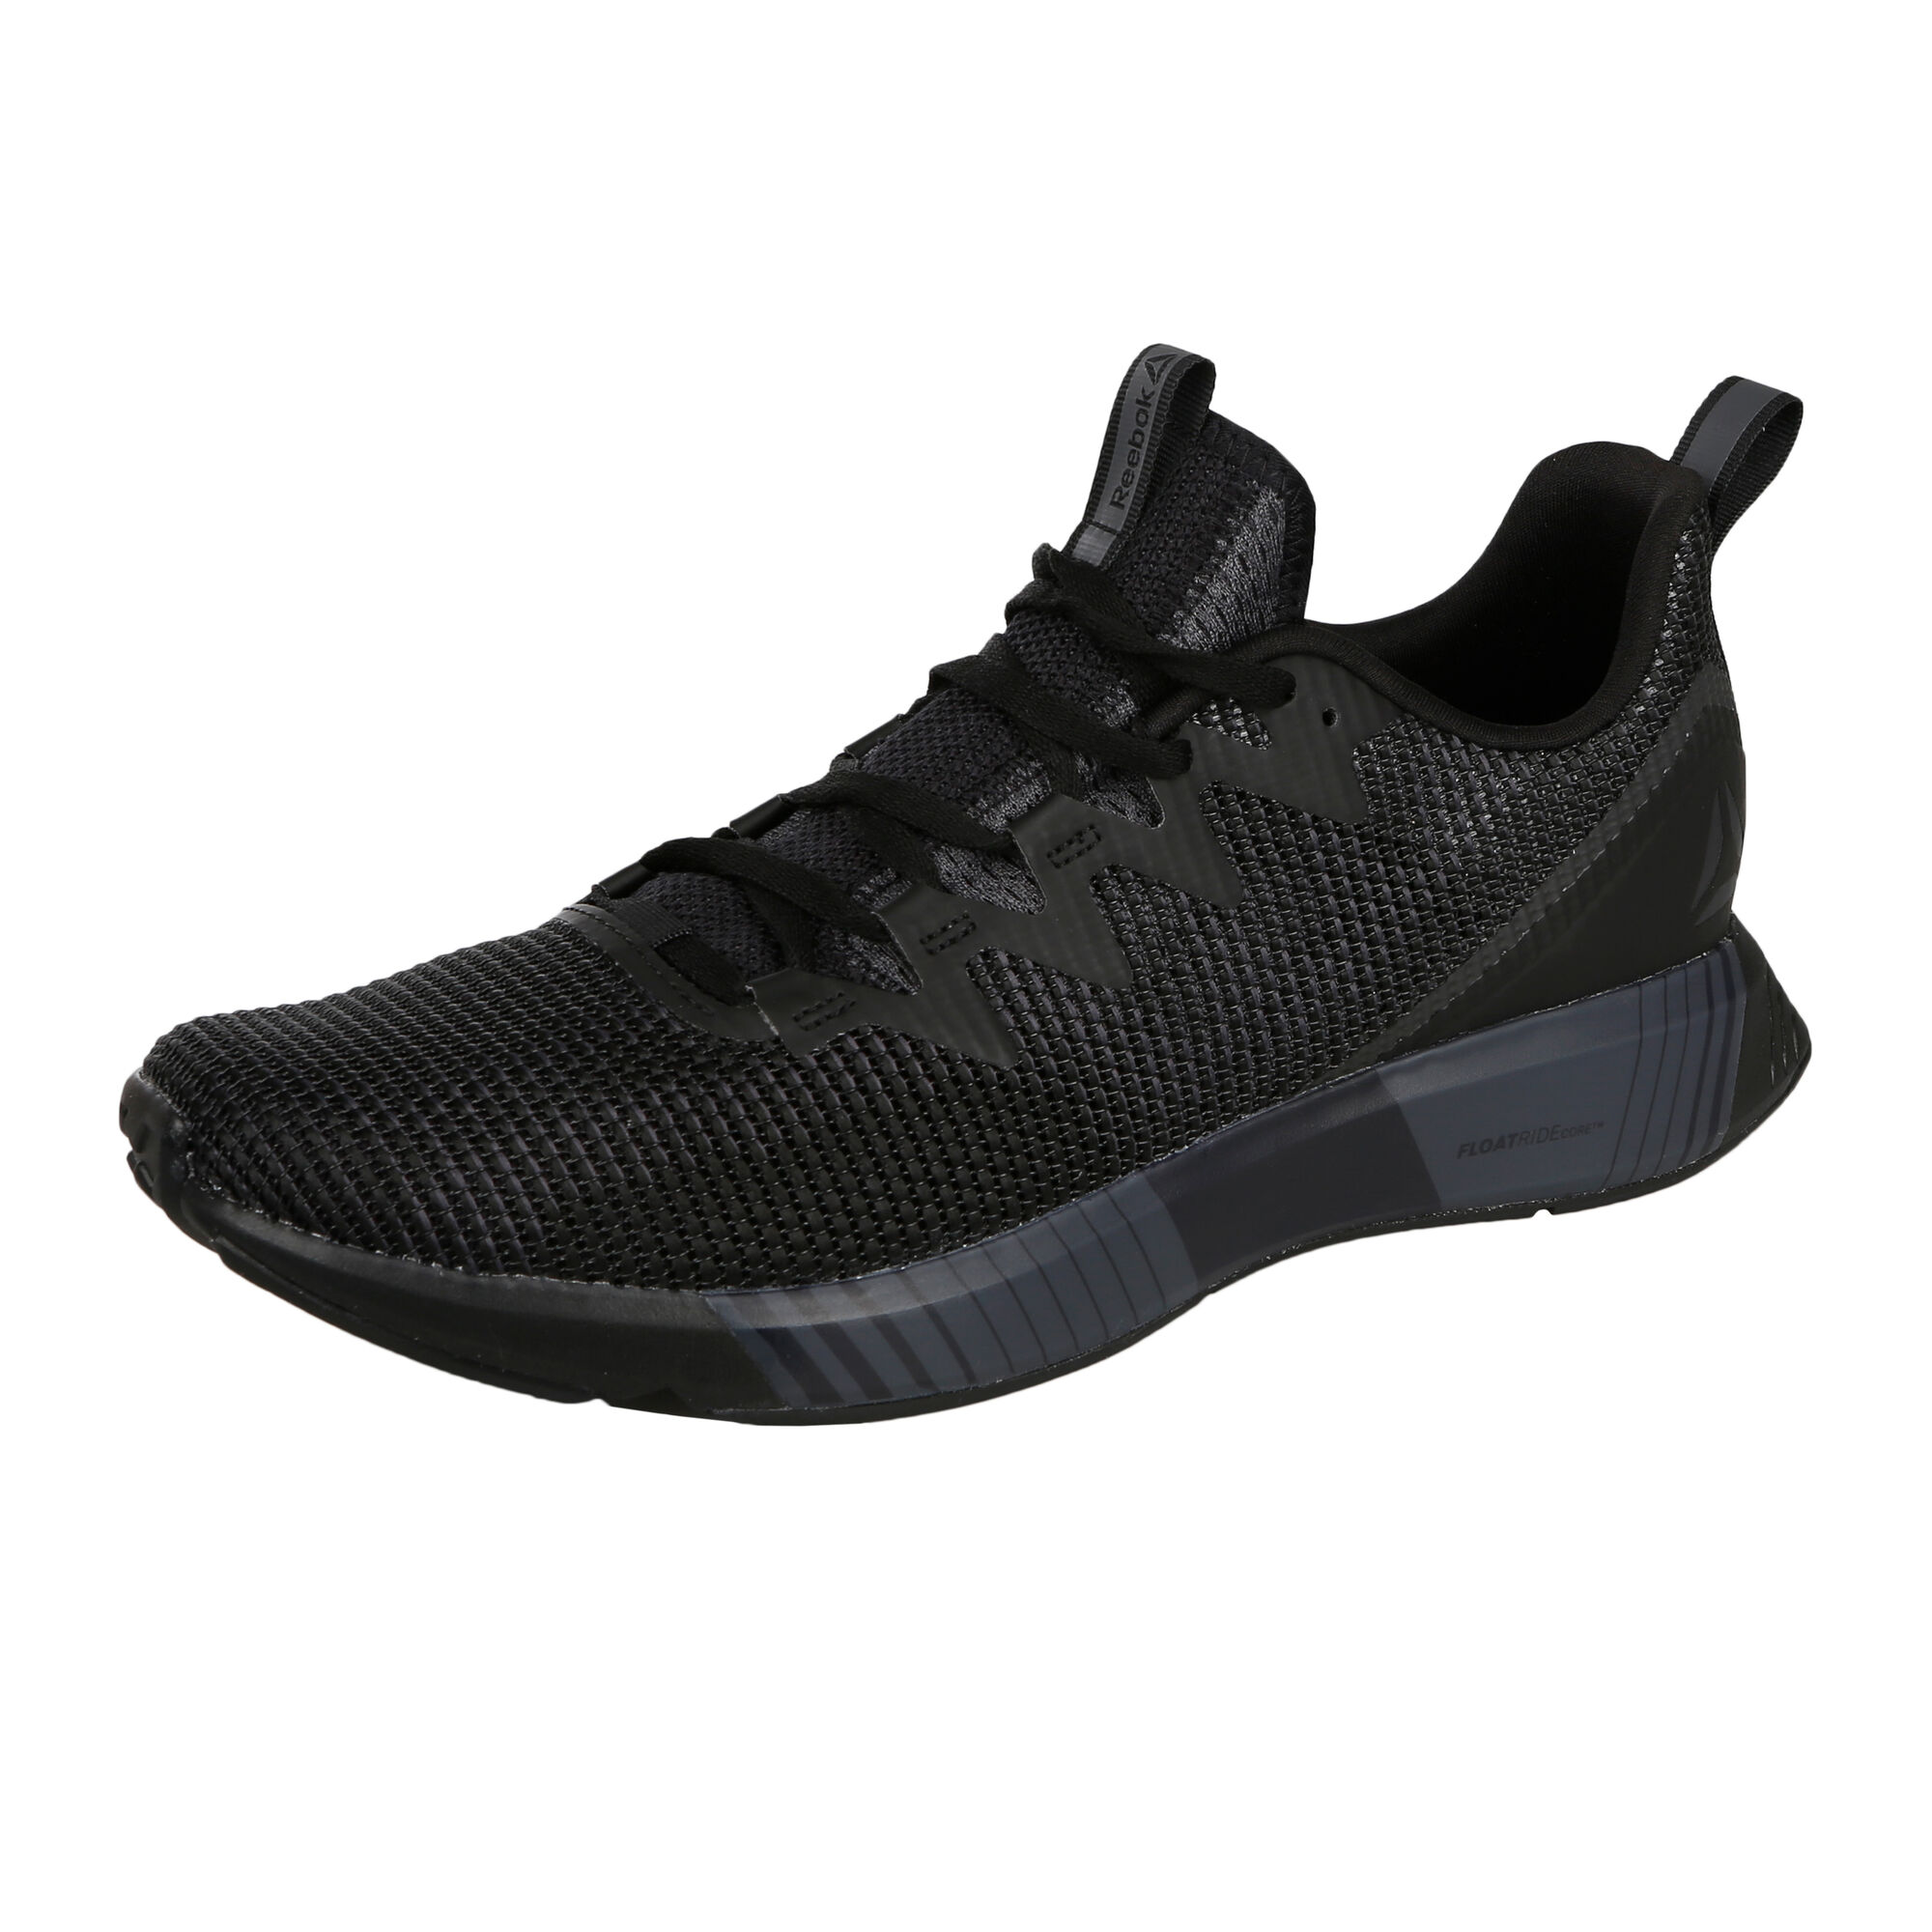 best service 983ba c7d49 Reebok Fusion Flexweave Neutral Running Shoe Men - Black, Dark Grey